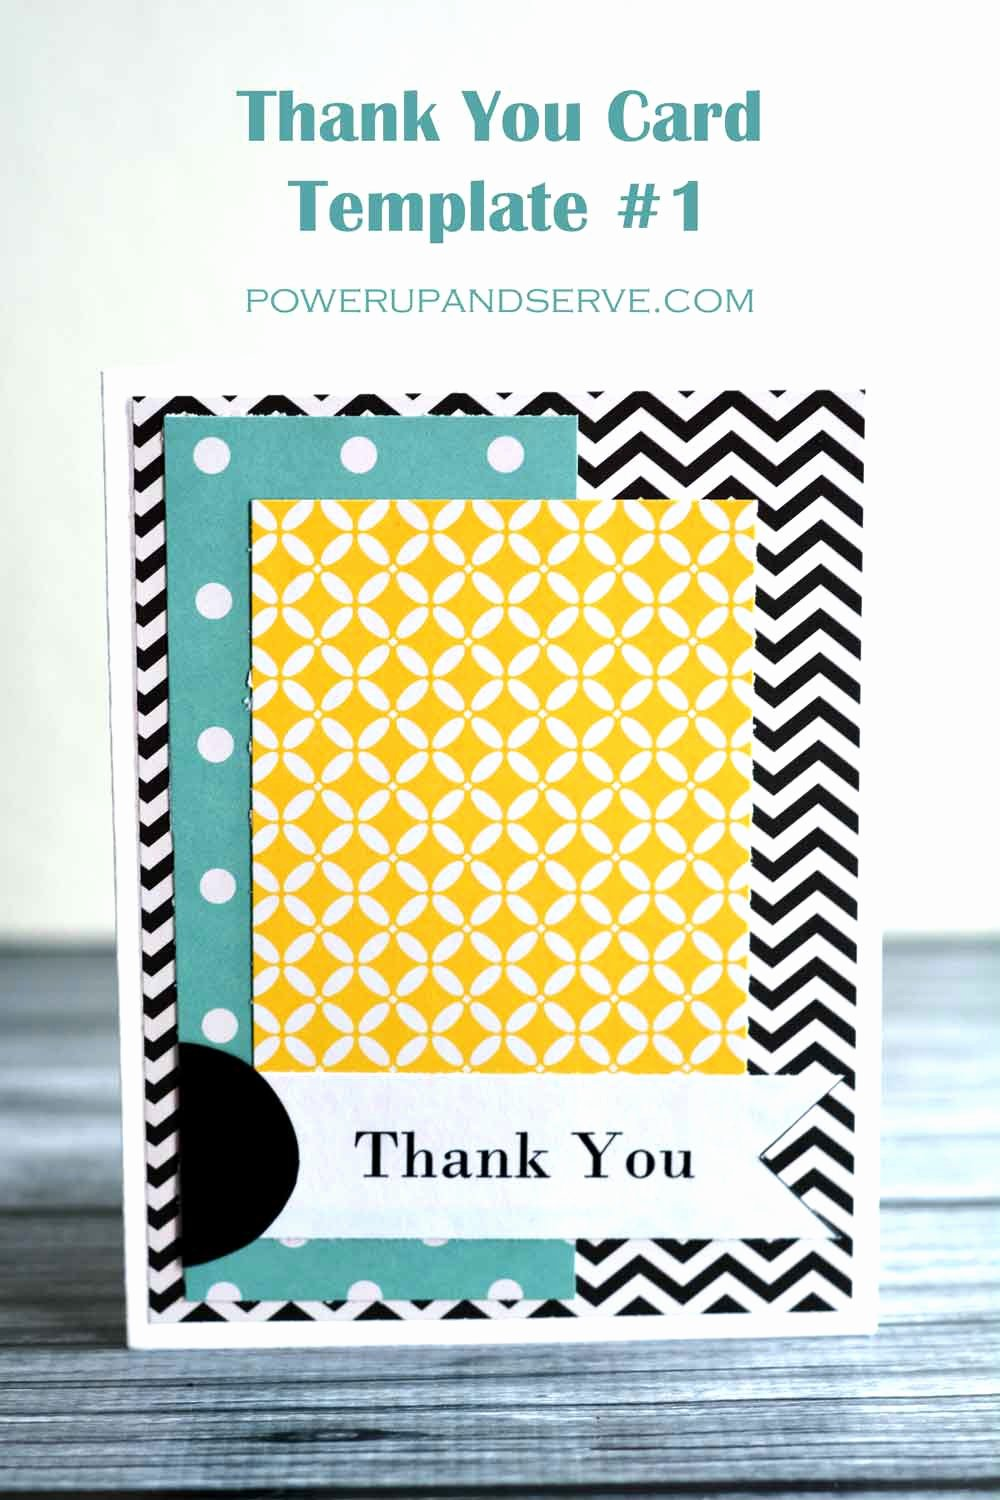 Thank You Postcard Template Luxury Thank You Card Template 1 Power Up and Serve